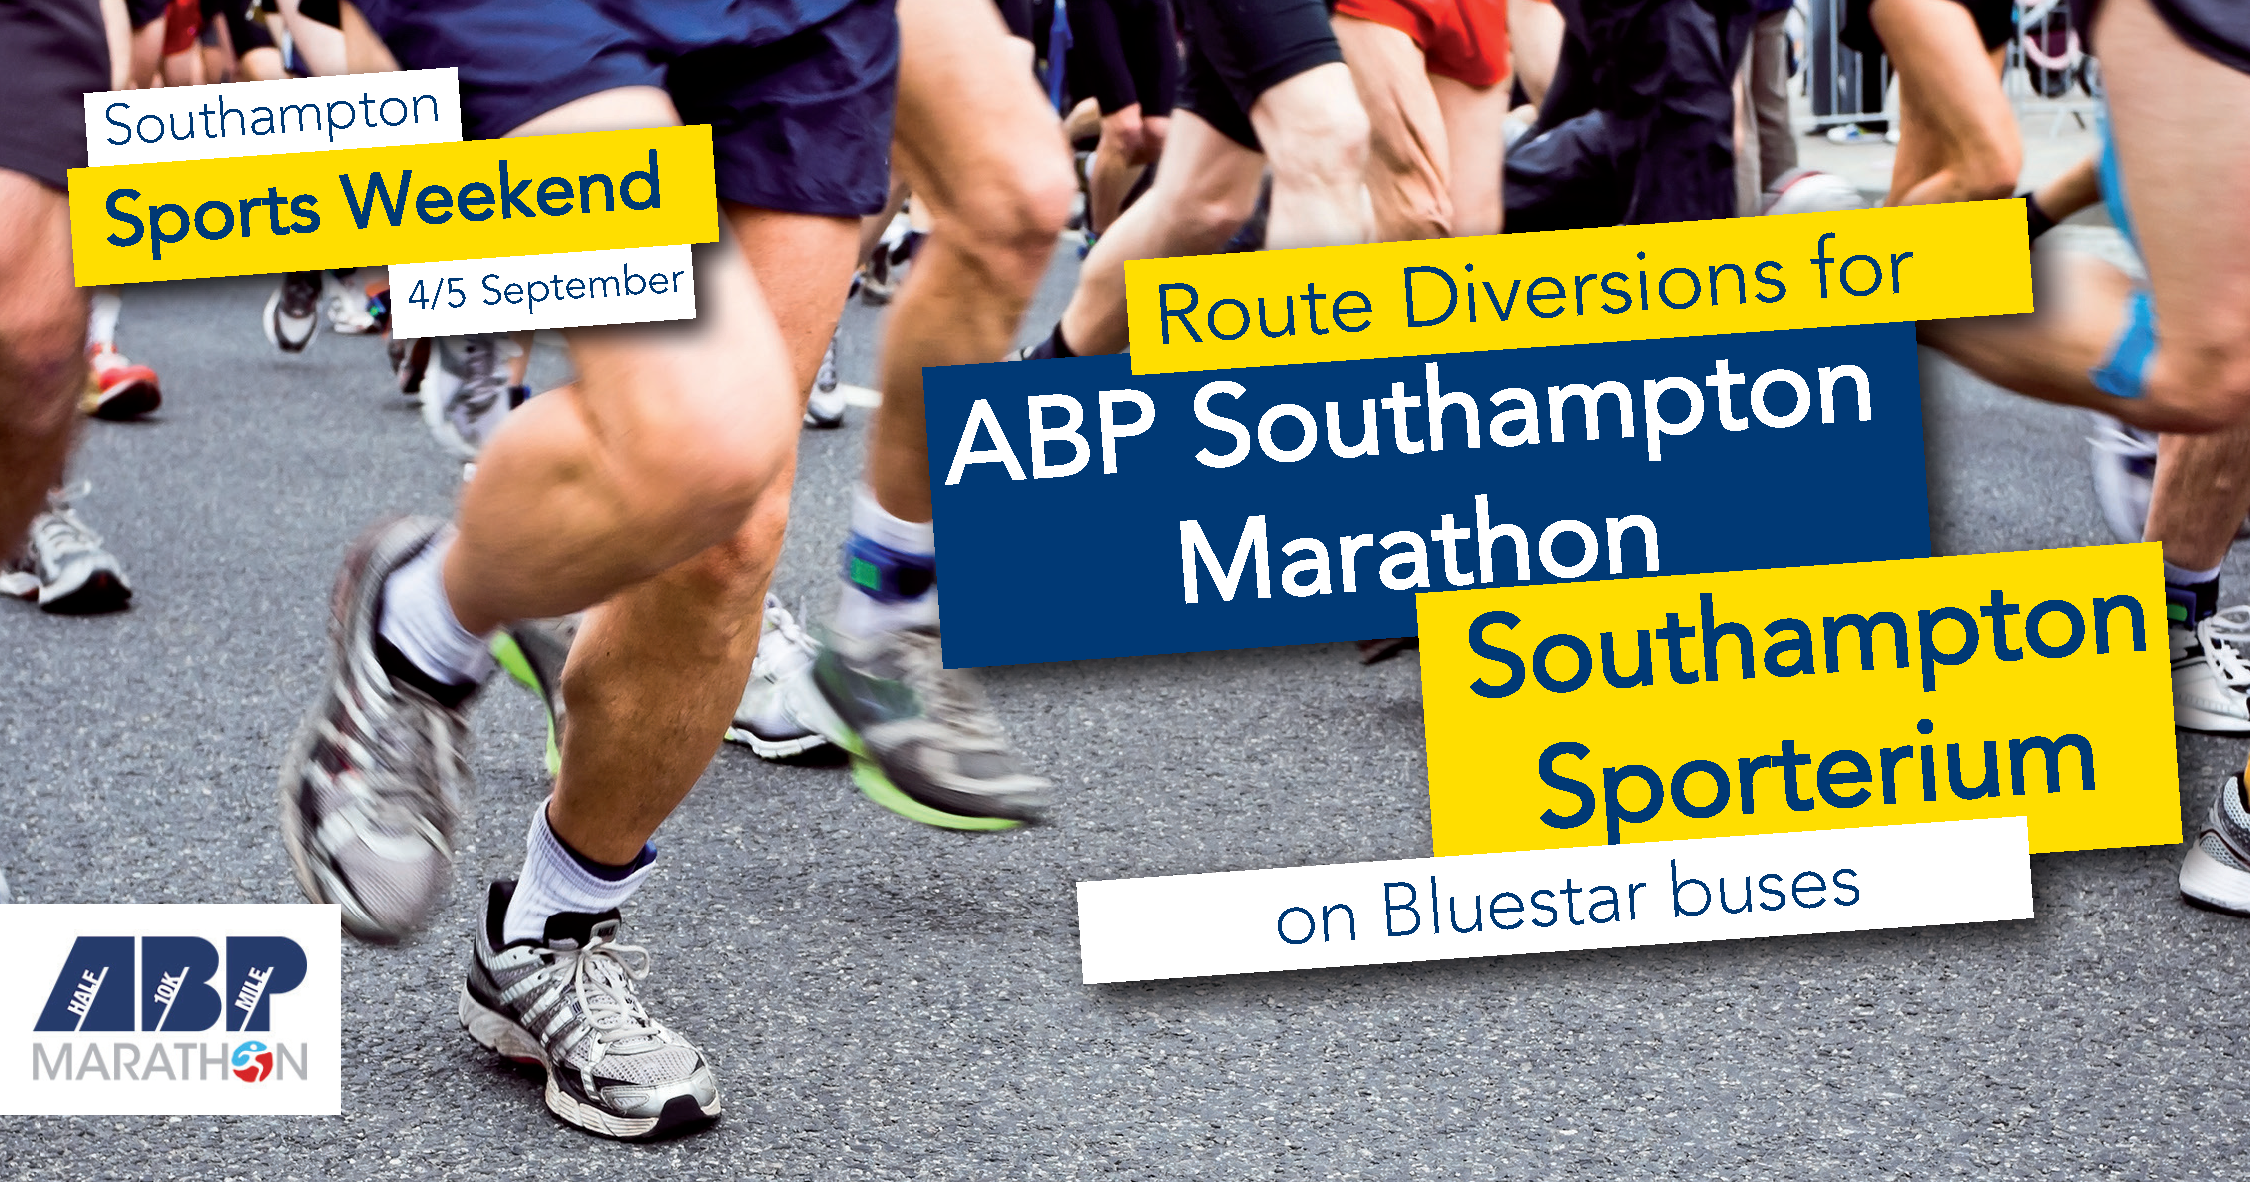 southampton sports weekend 4/5 september route diversions on bluestar buses